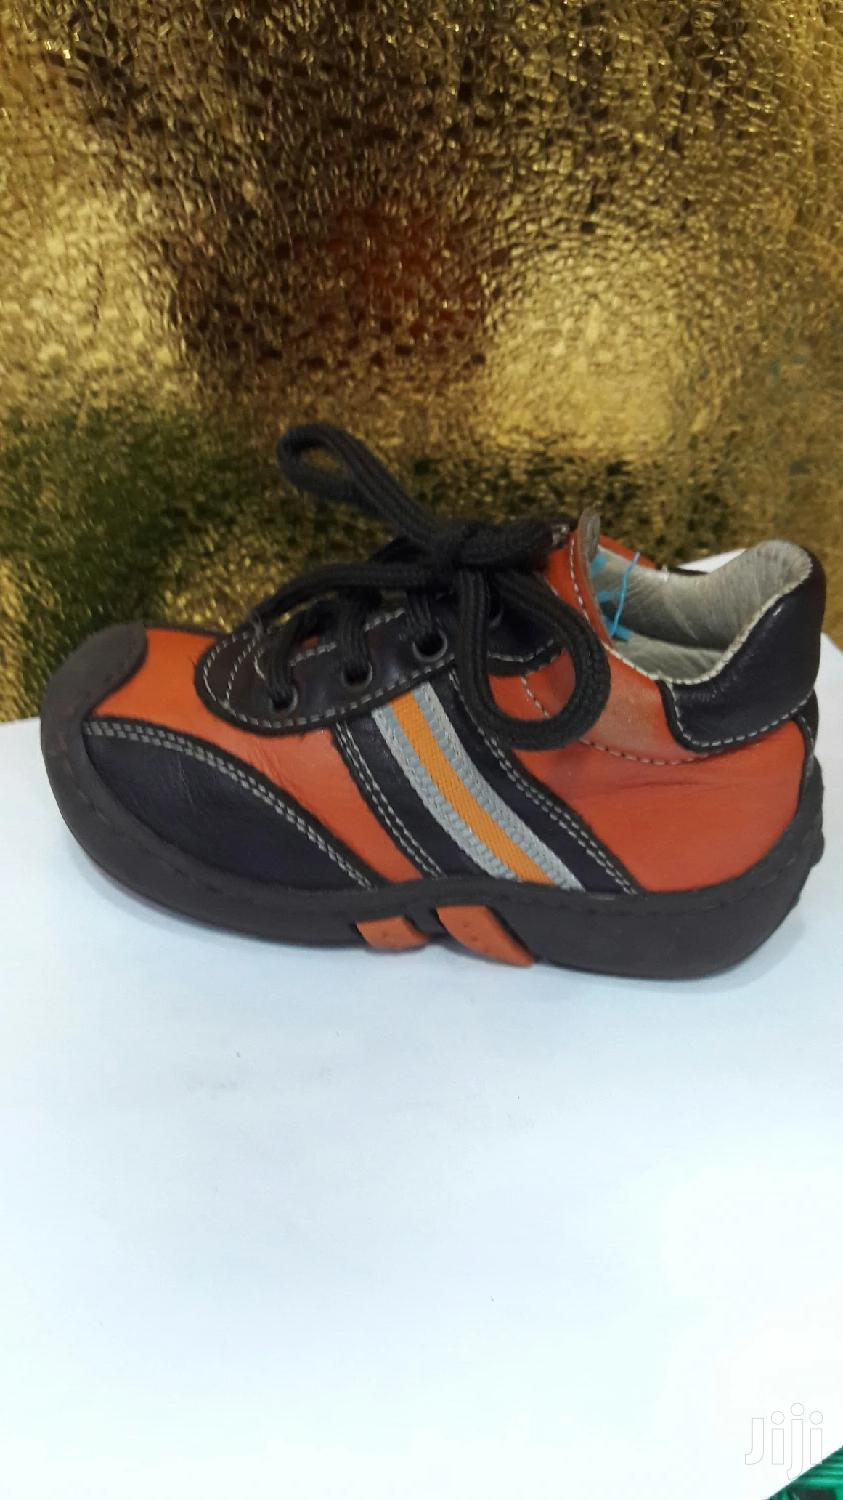 Kid's Shoes Available